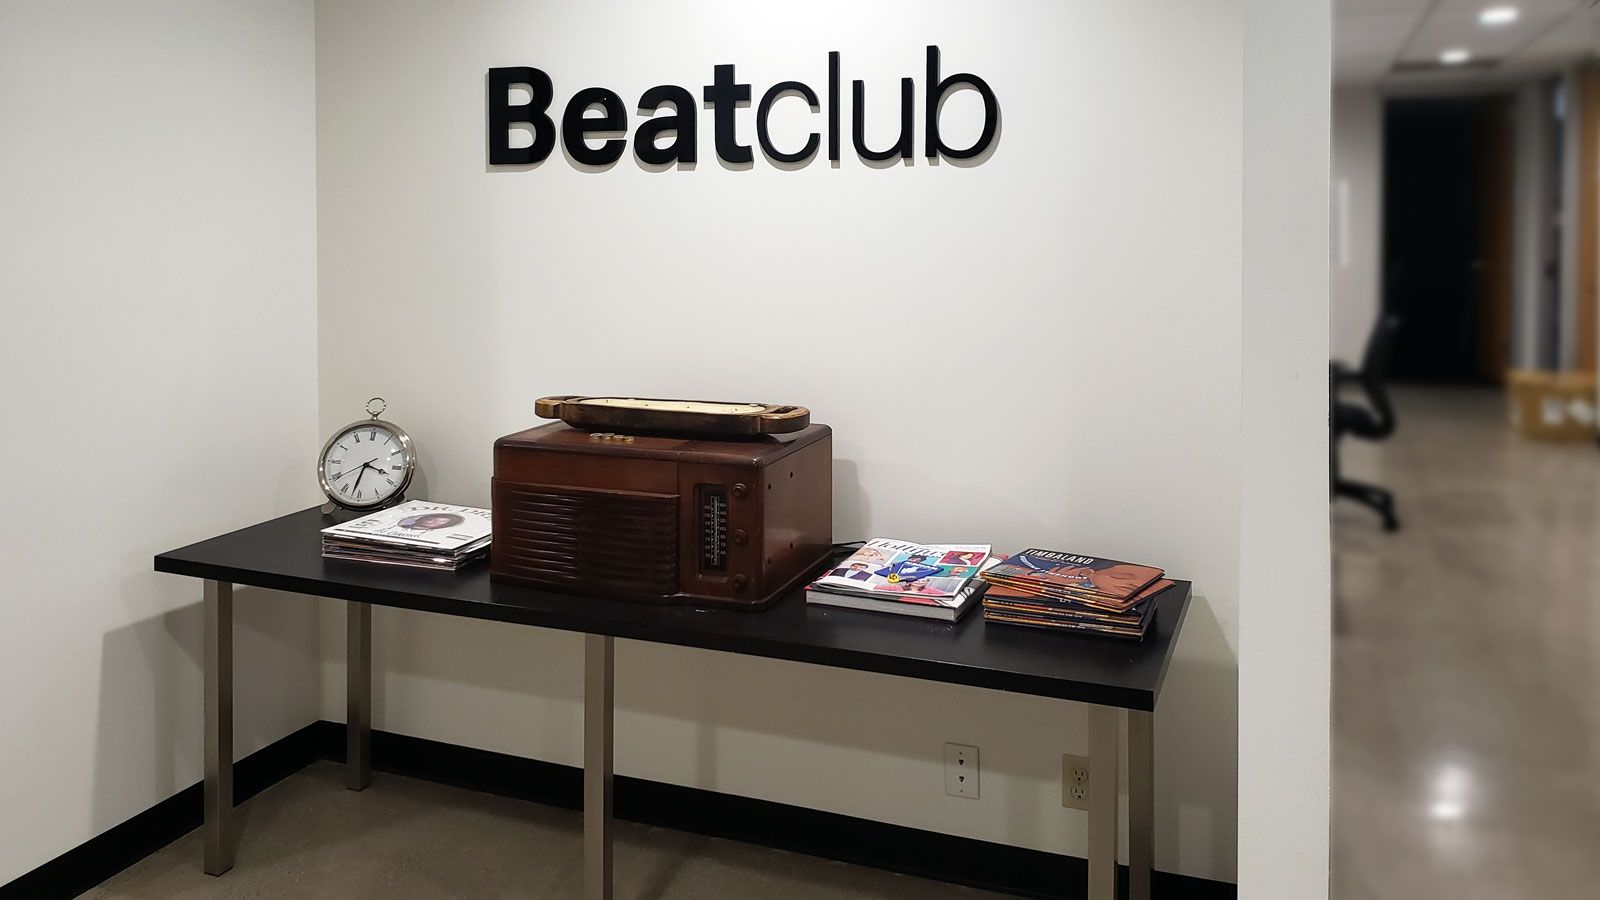 Beatclub 3d acrylic letters sign in a bold style displaying the brand name for corporate office interior branding